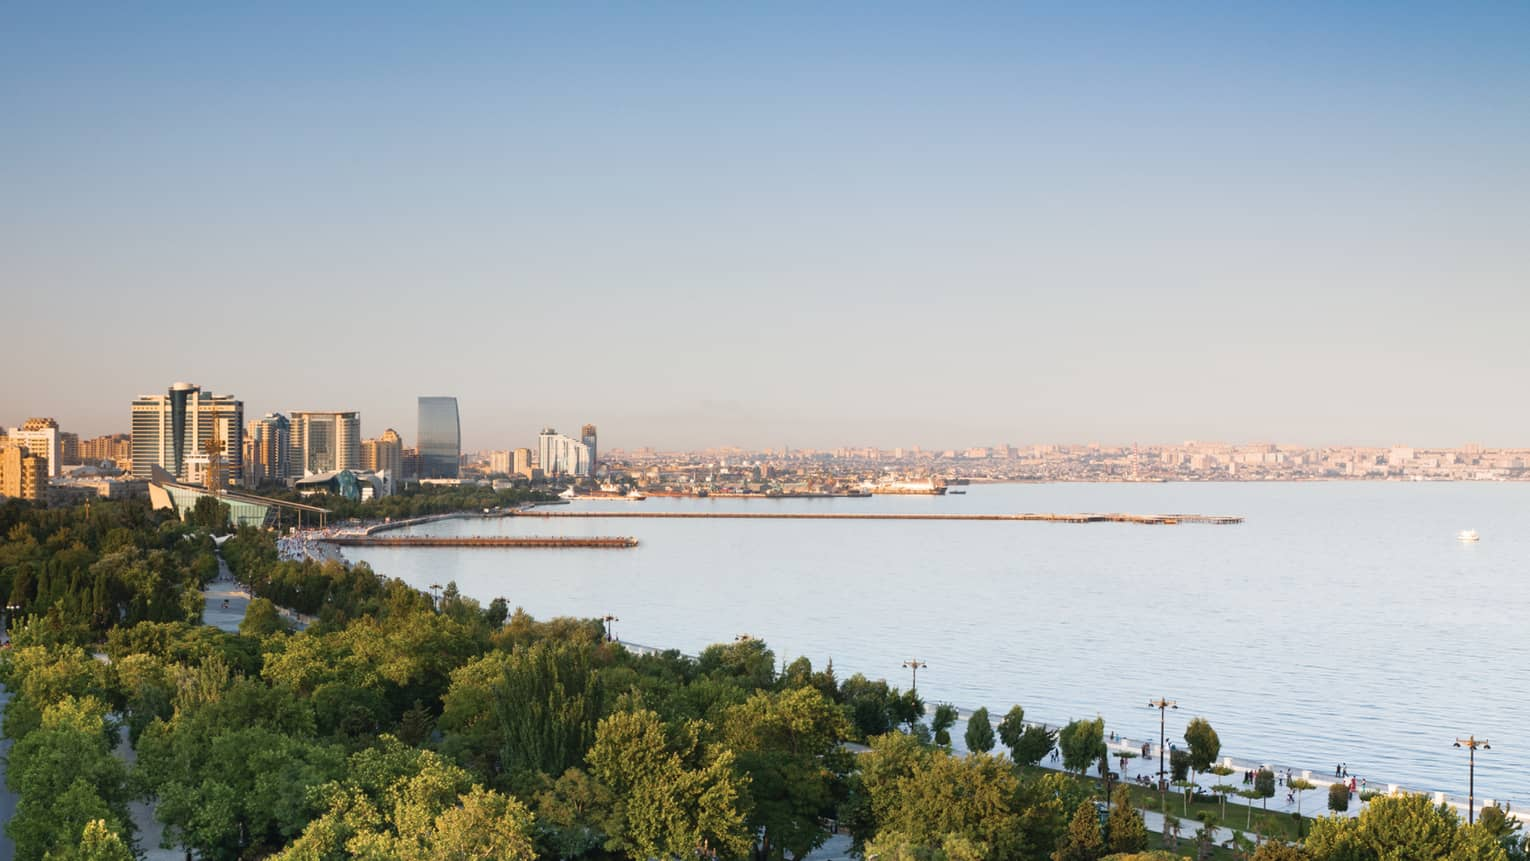 Aerial view of Baku skyline during the day with canopy of trees, high rise buildings, Caspian Sea